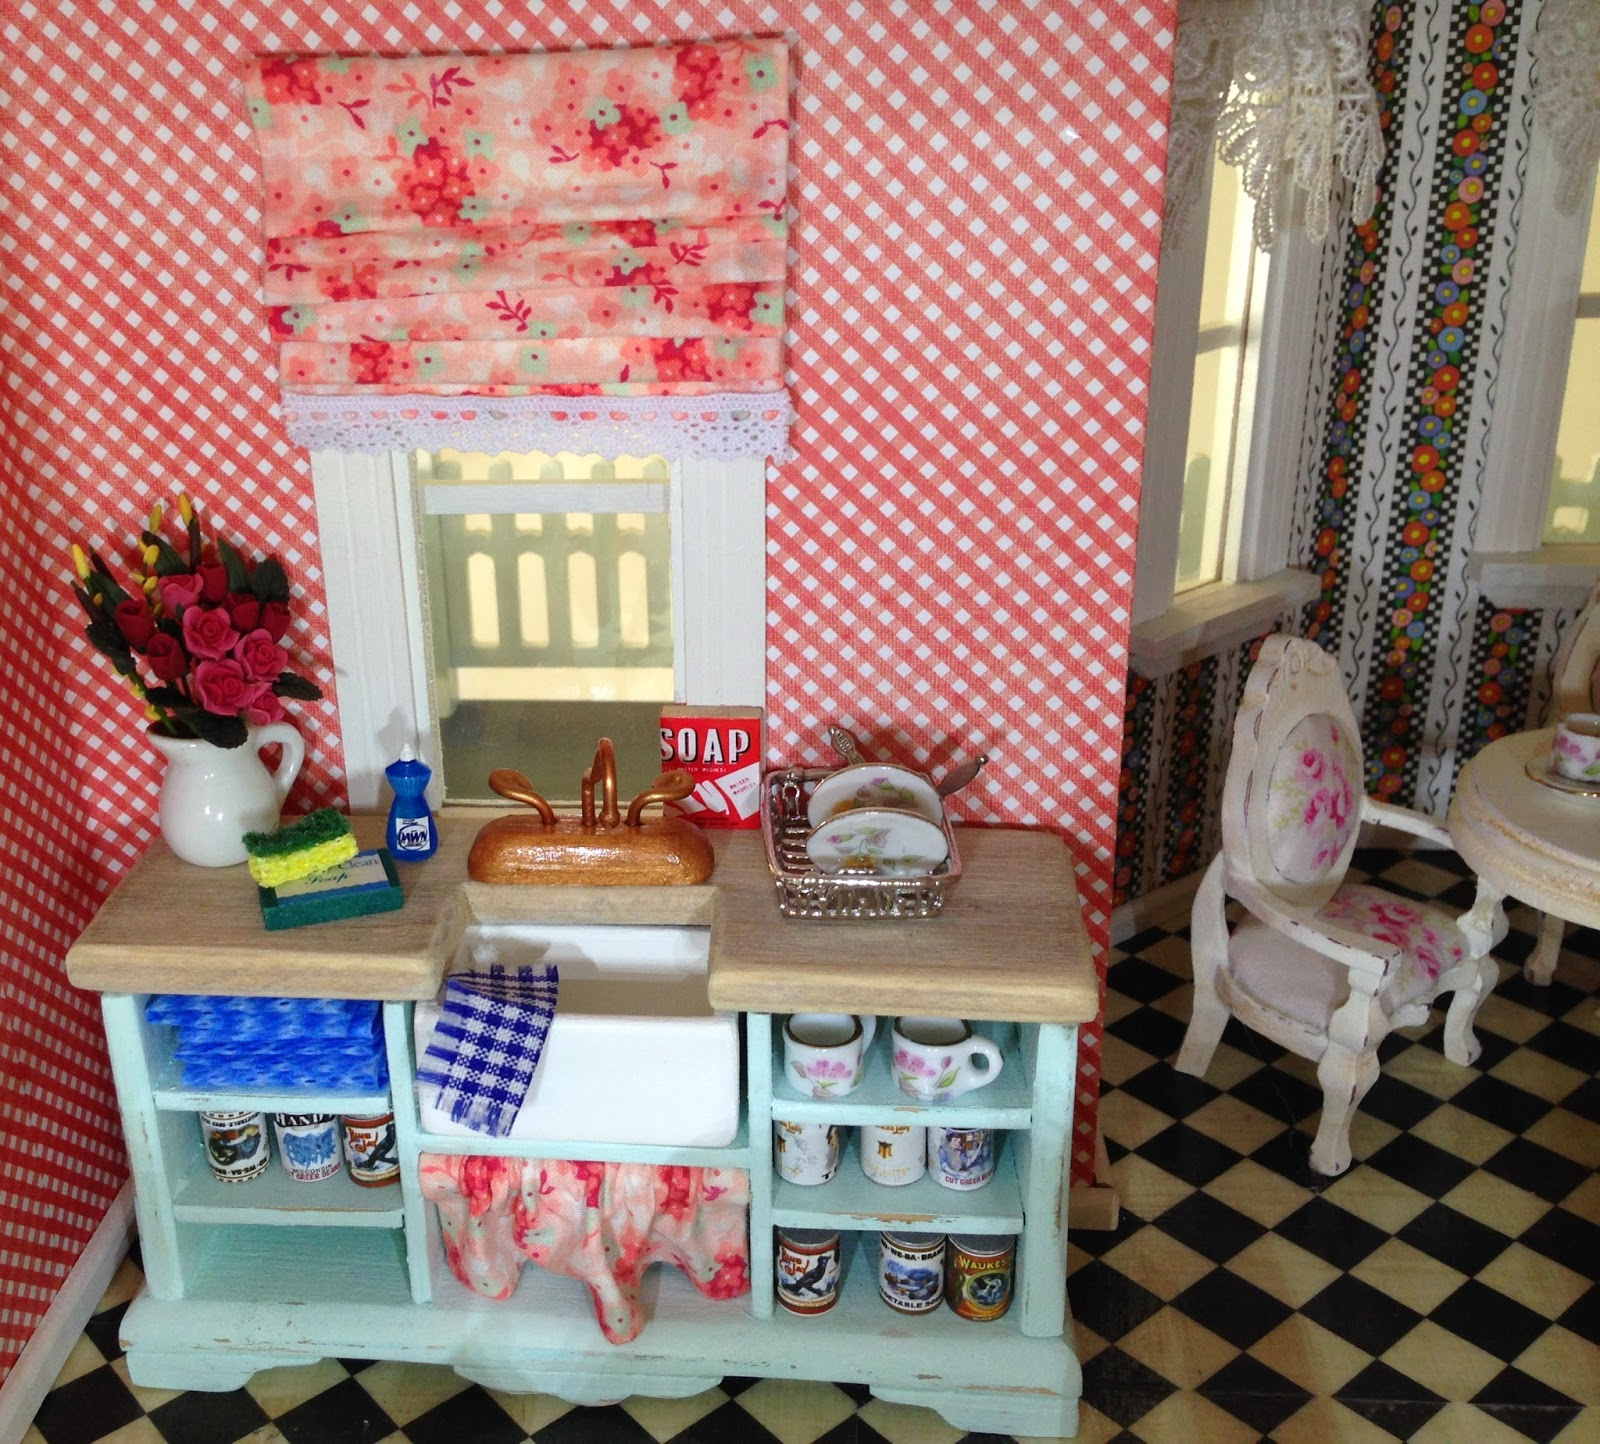 I Also Refinished A Pie Safe Cabinet From Hobby Lobby To Match The Table.  The High Chair Came With A Baby Furniture Set.